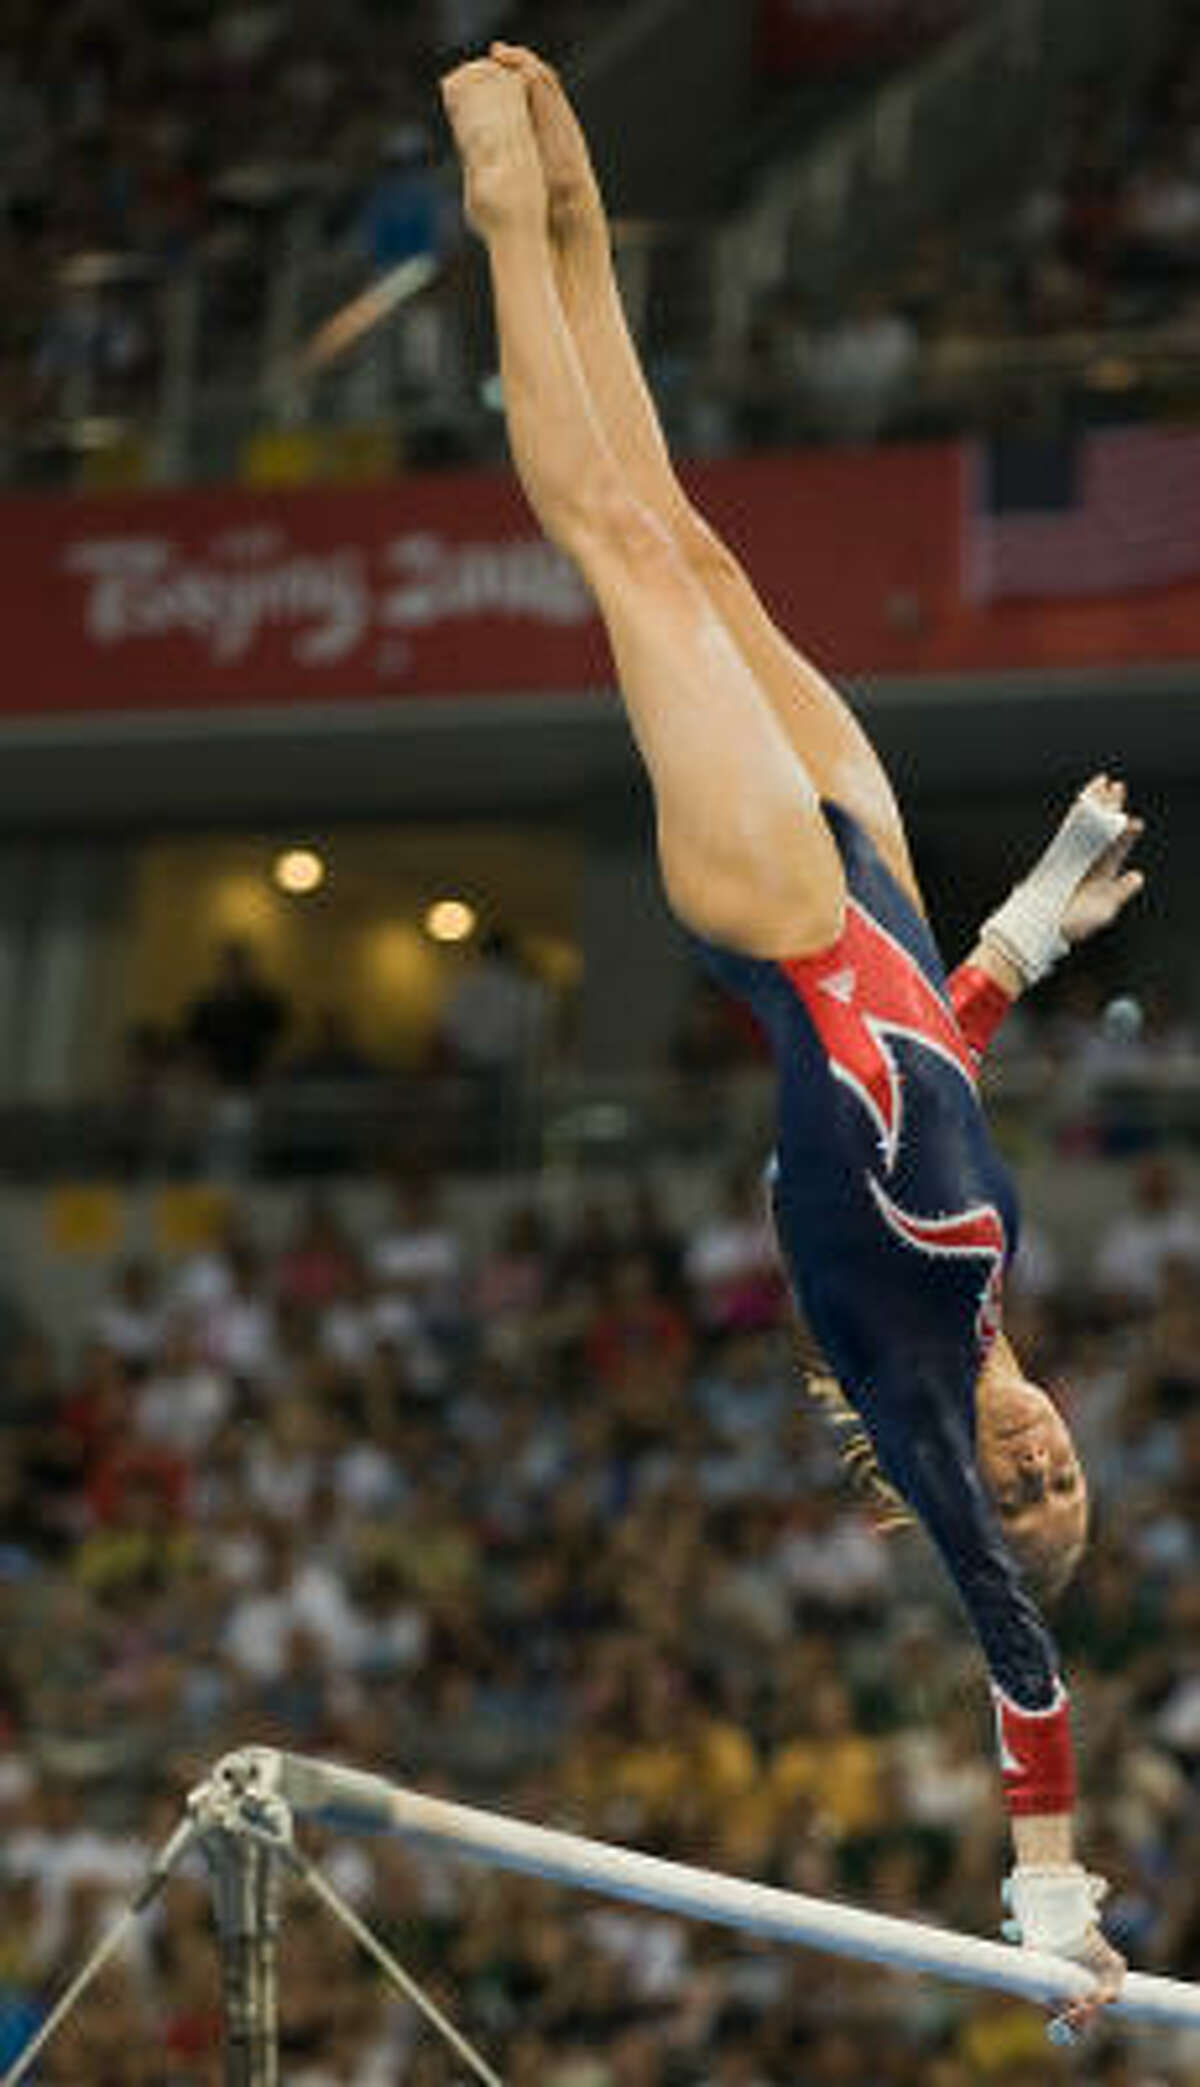 American Nastia Liukin finished second in the uneven bars despite having a gold-medal score.